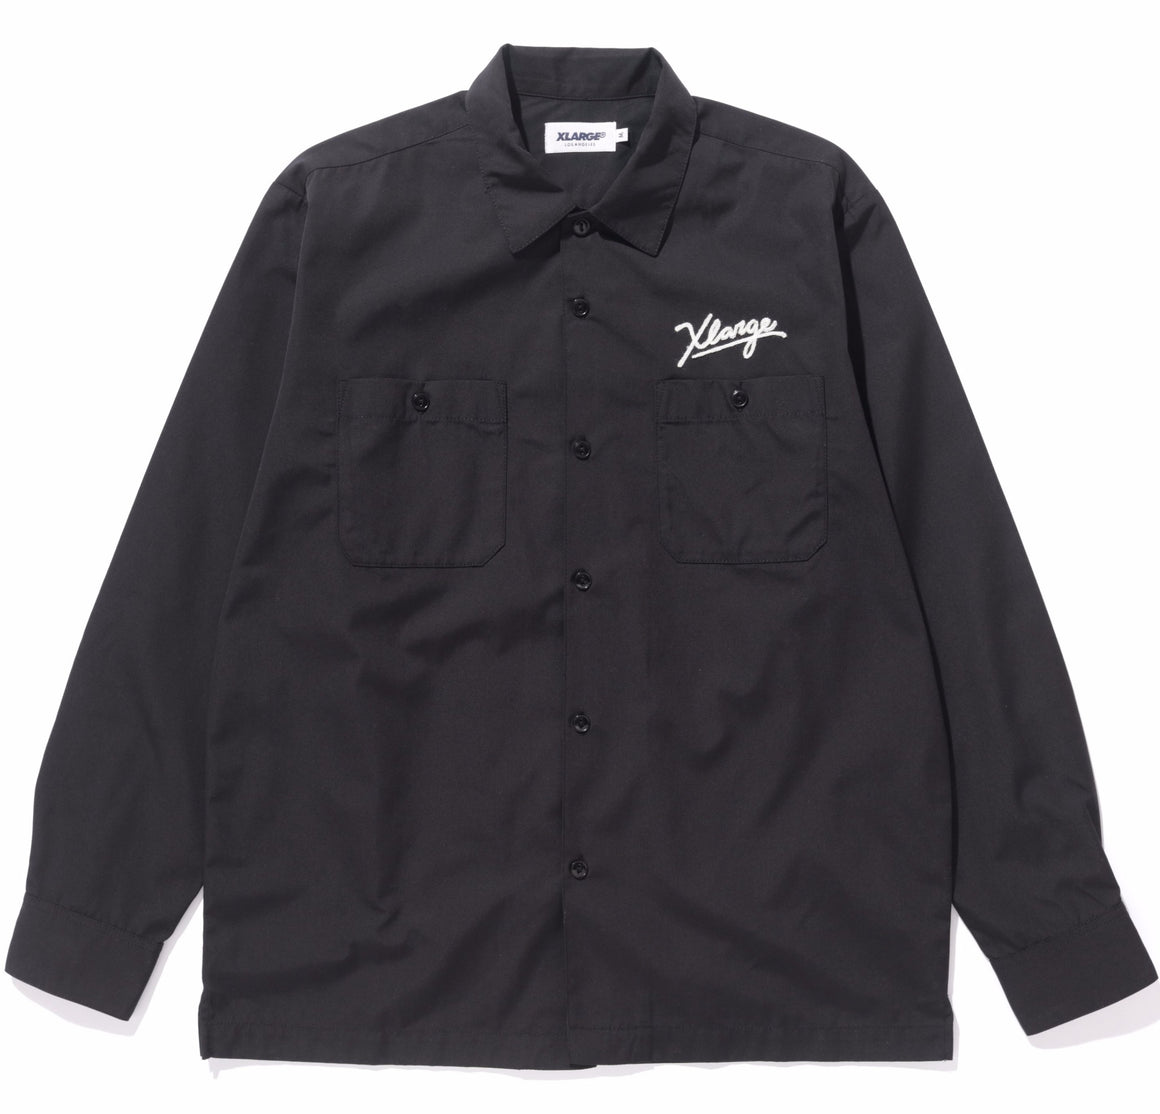 EMBROIDERY LOGO LS WORKSHIRT - X-Large Clothing